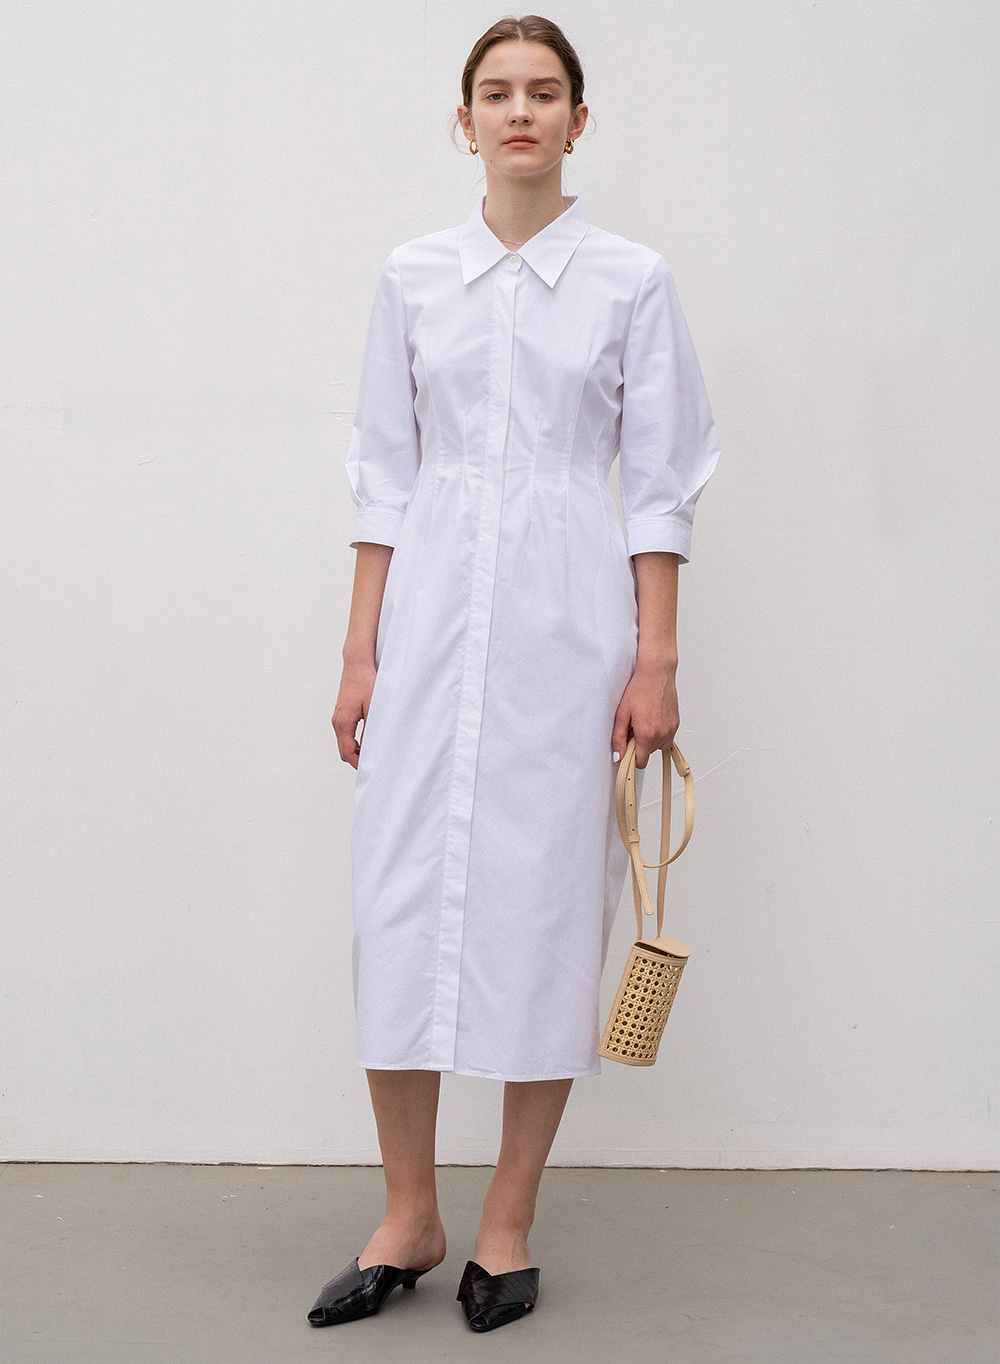 [ESSENTIAL] Silhouette Shirt Dress White